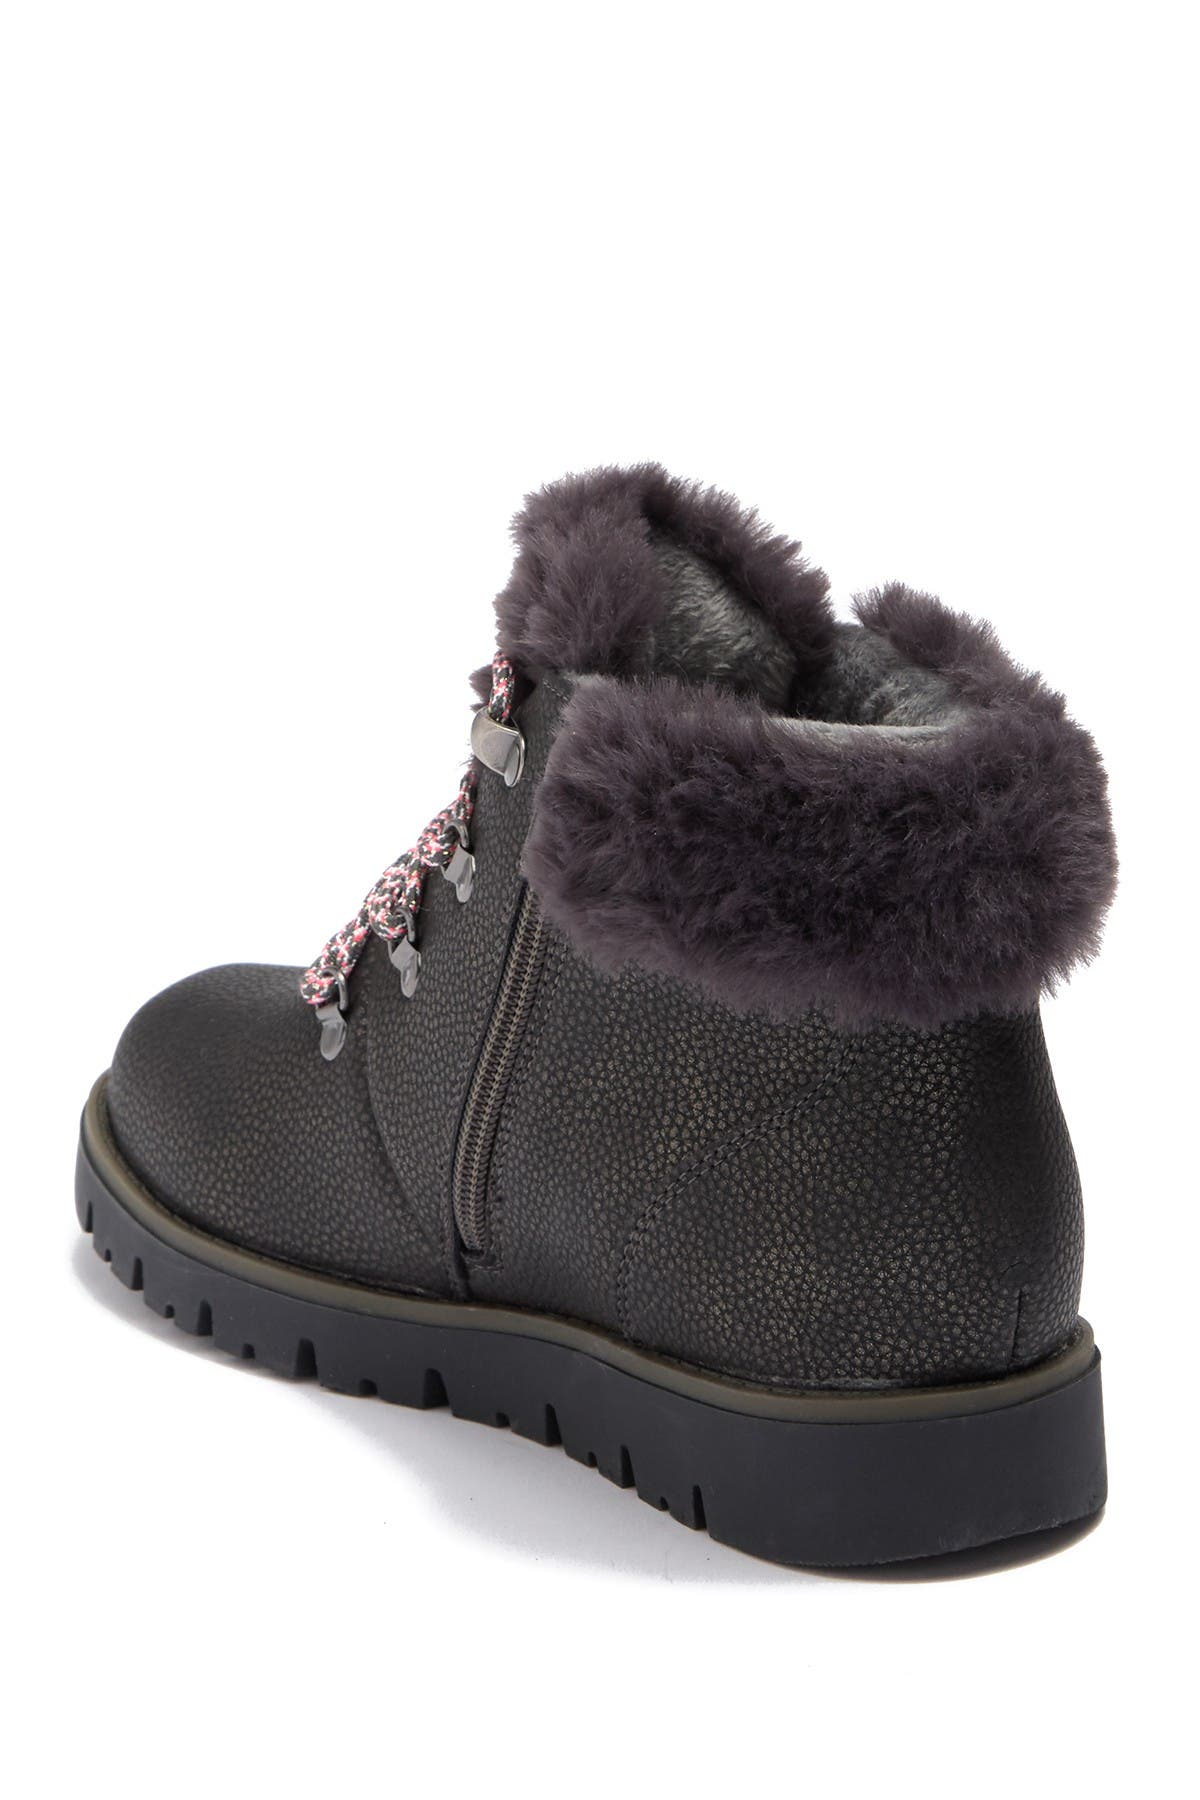 SPROX Oliva Faux Fur Lined Boot